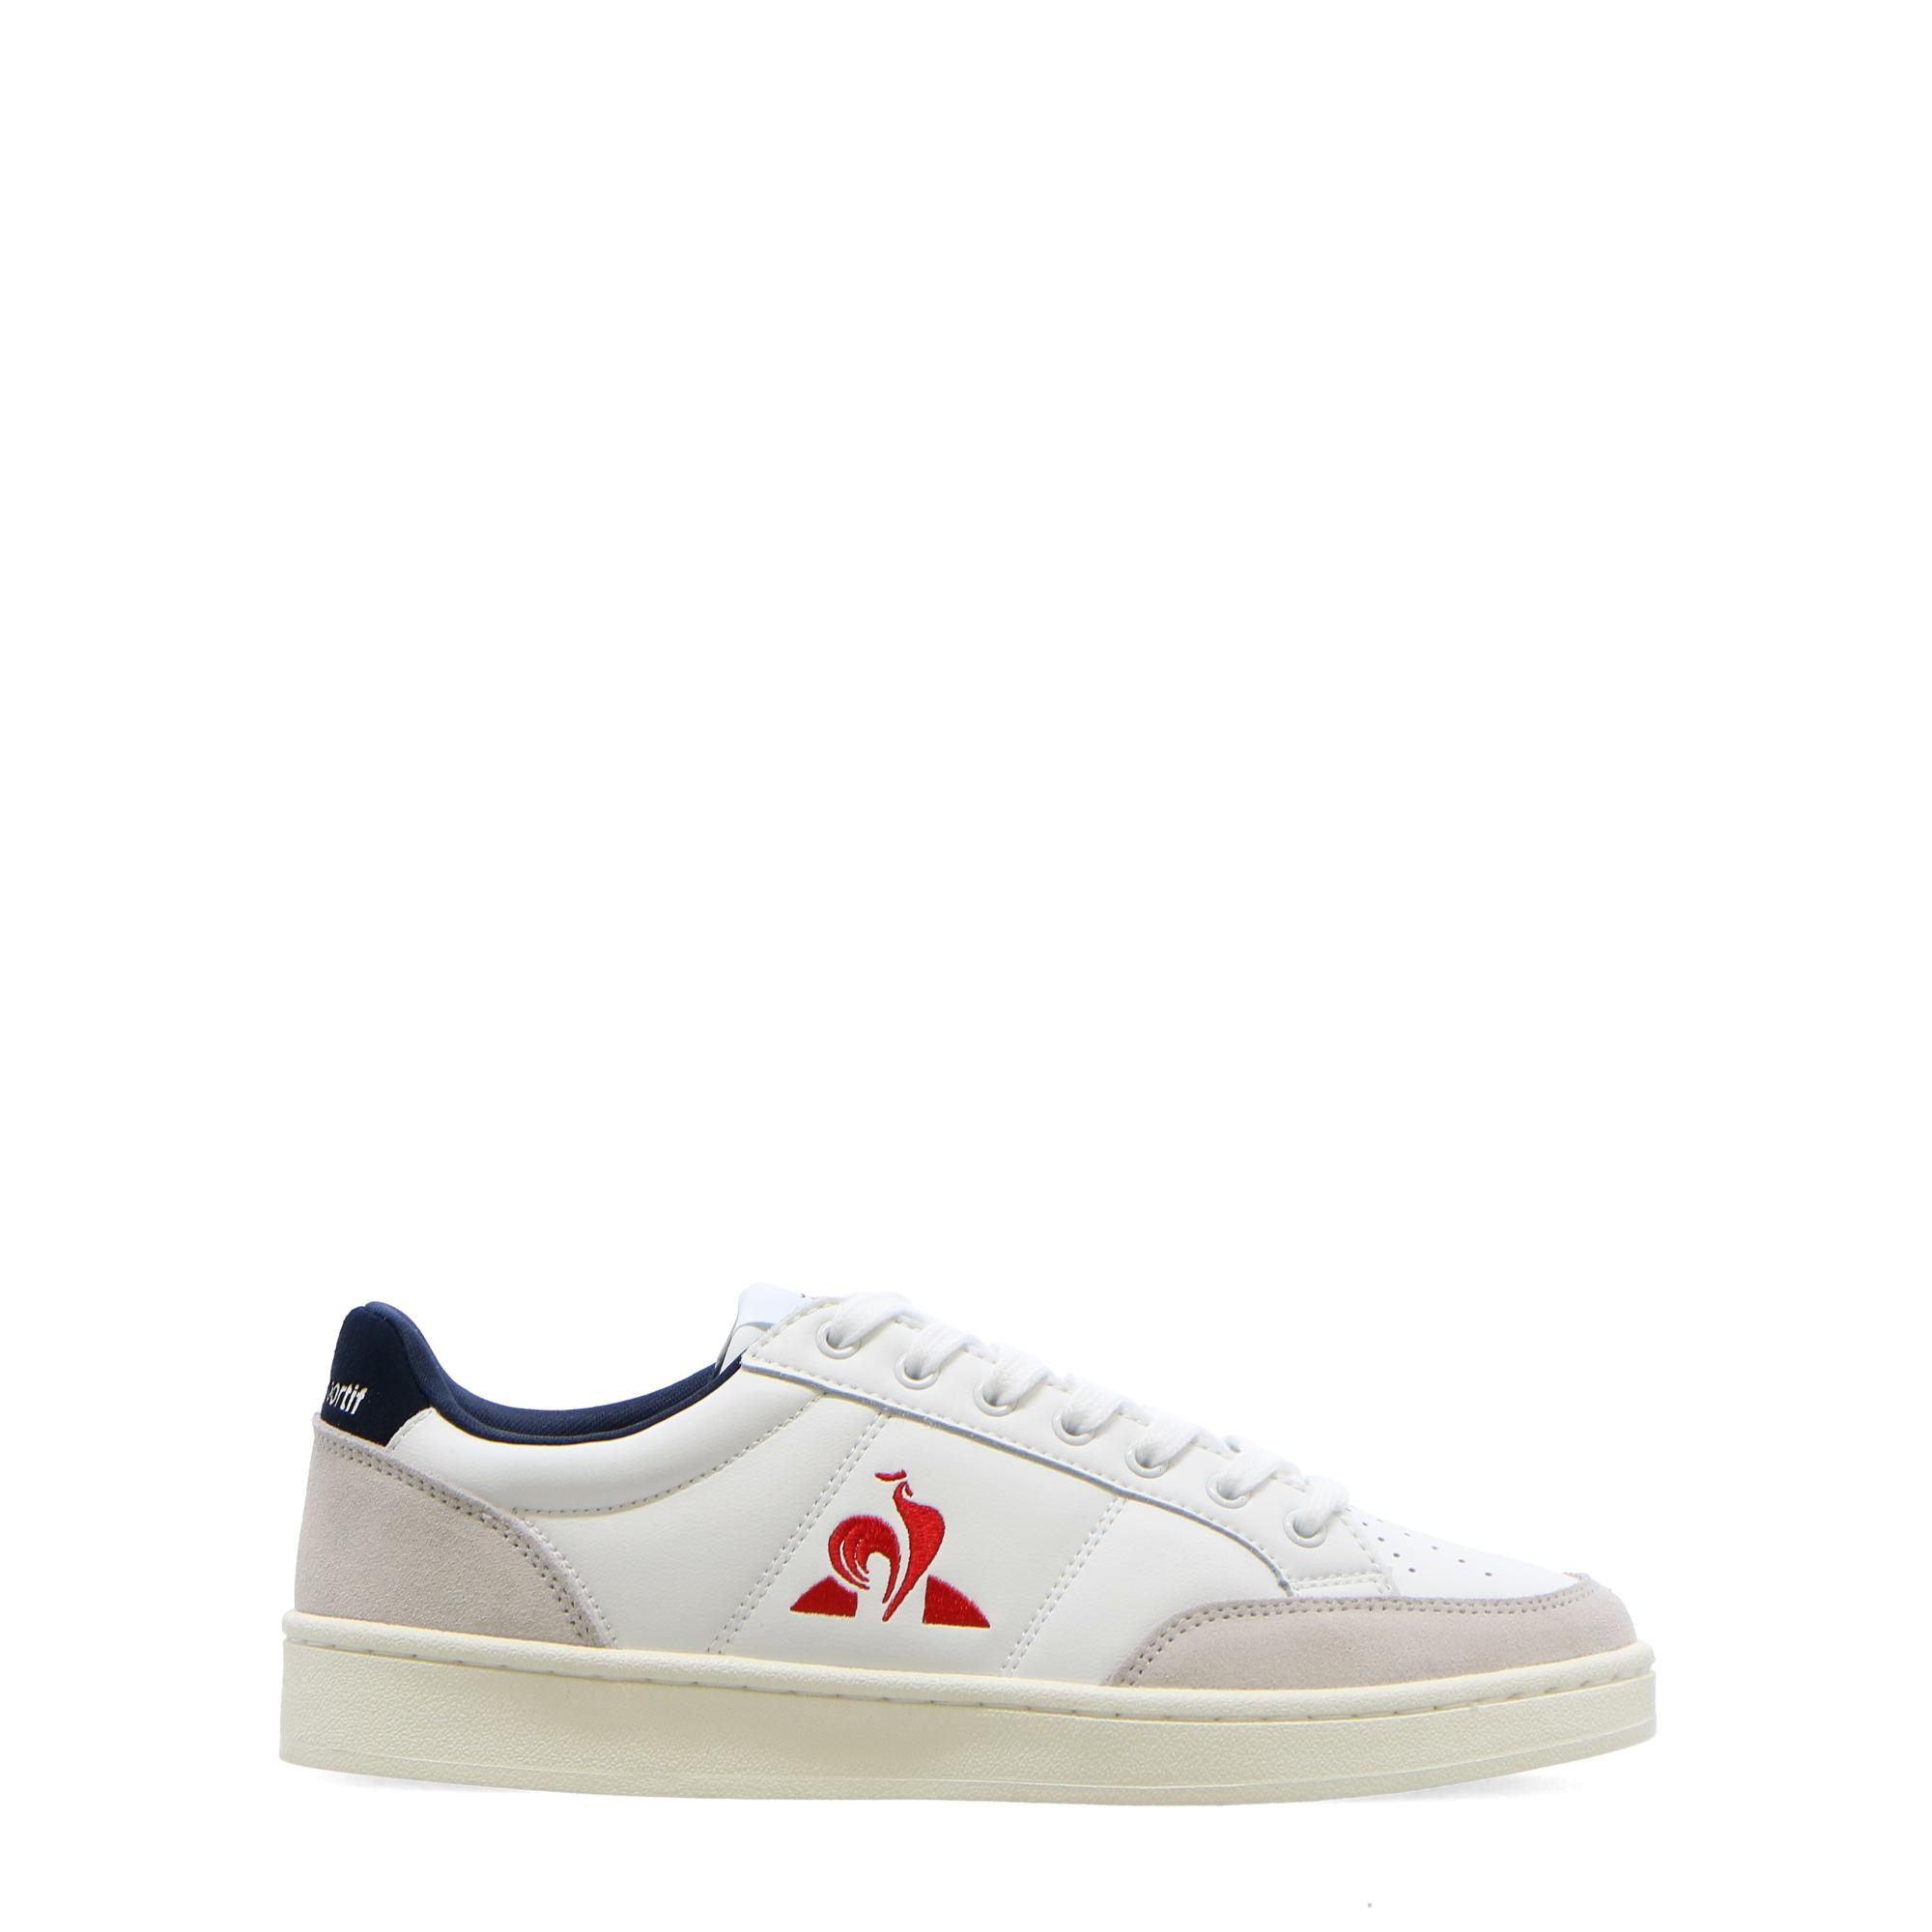 Le Coq Sportif Court Net Optical white bbr